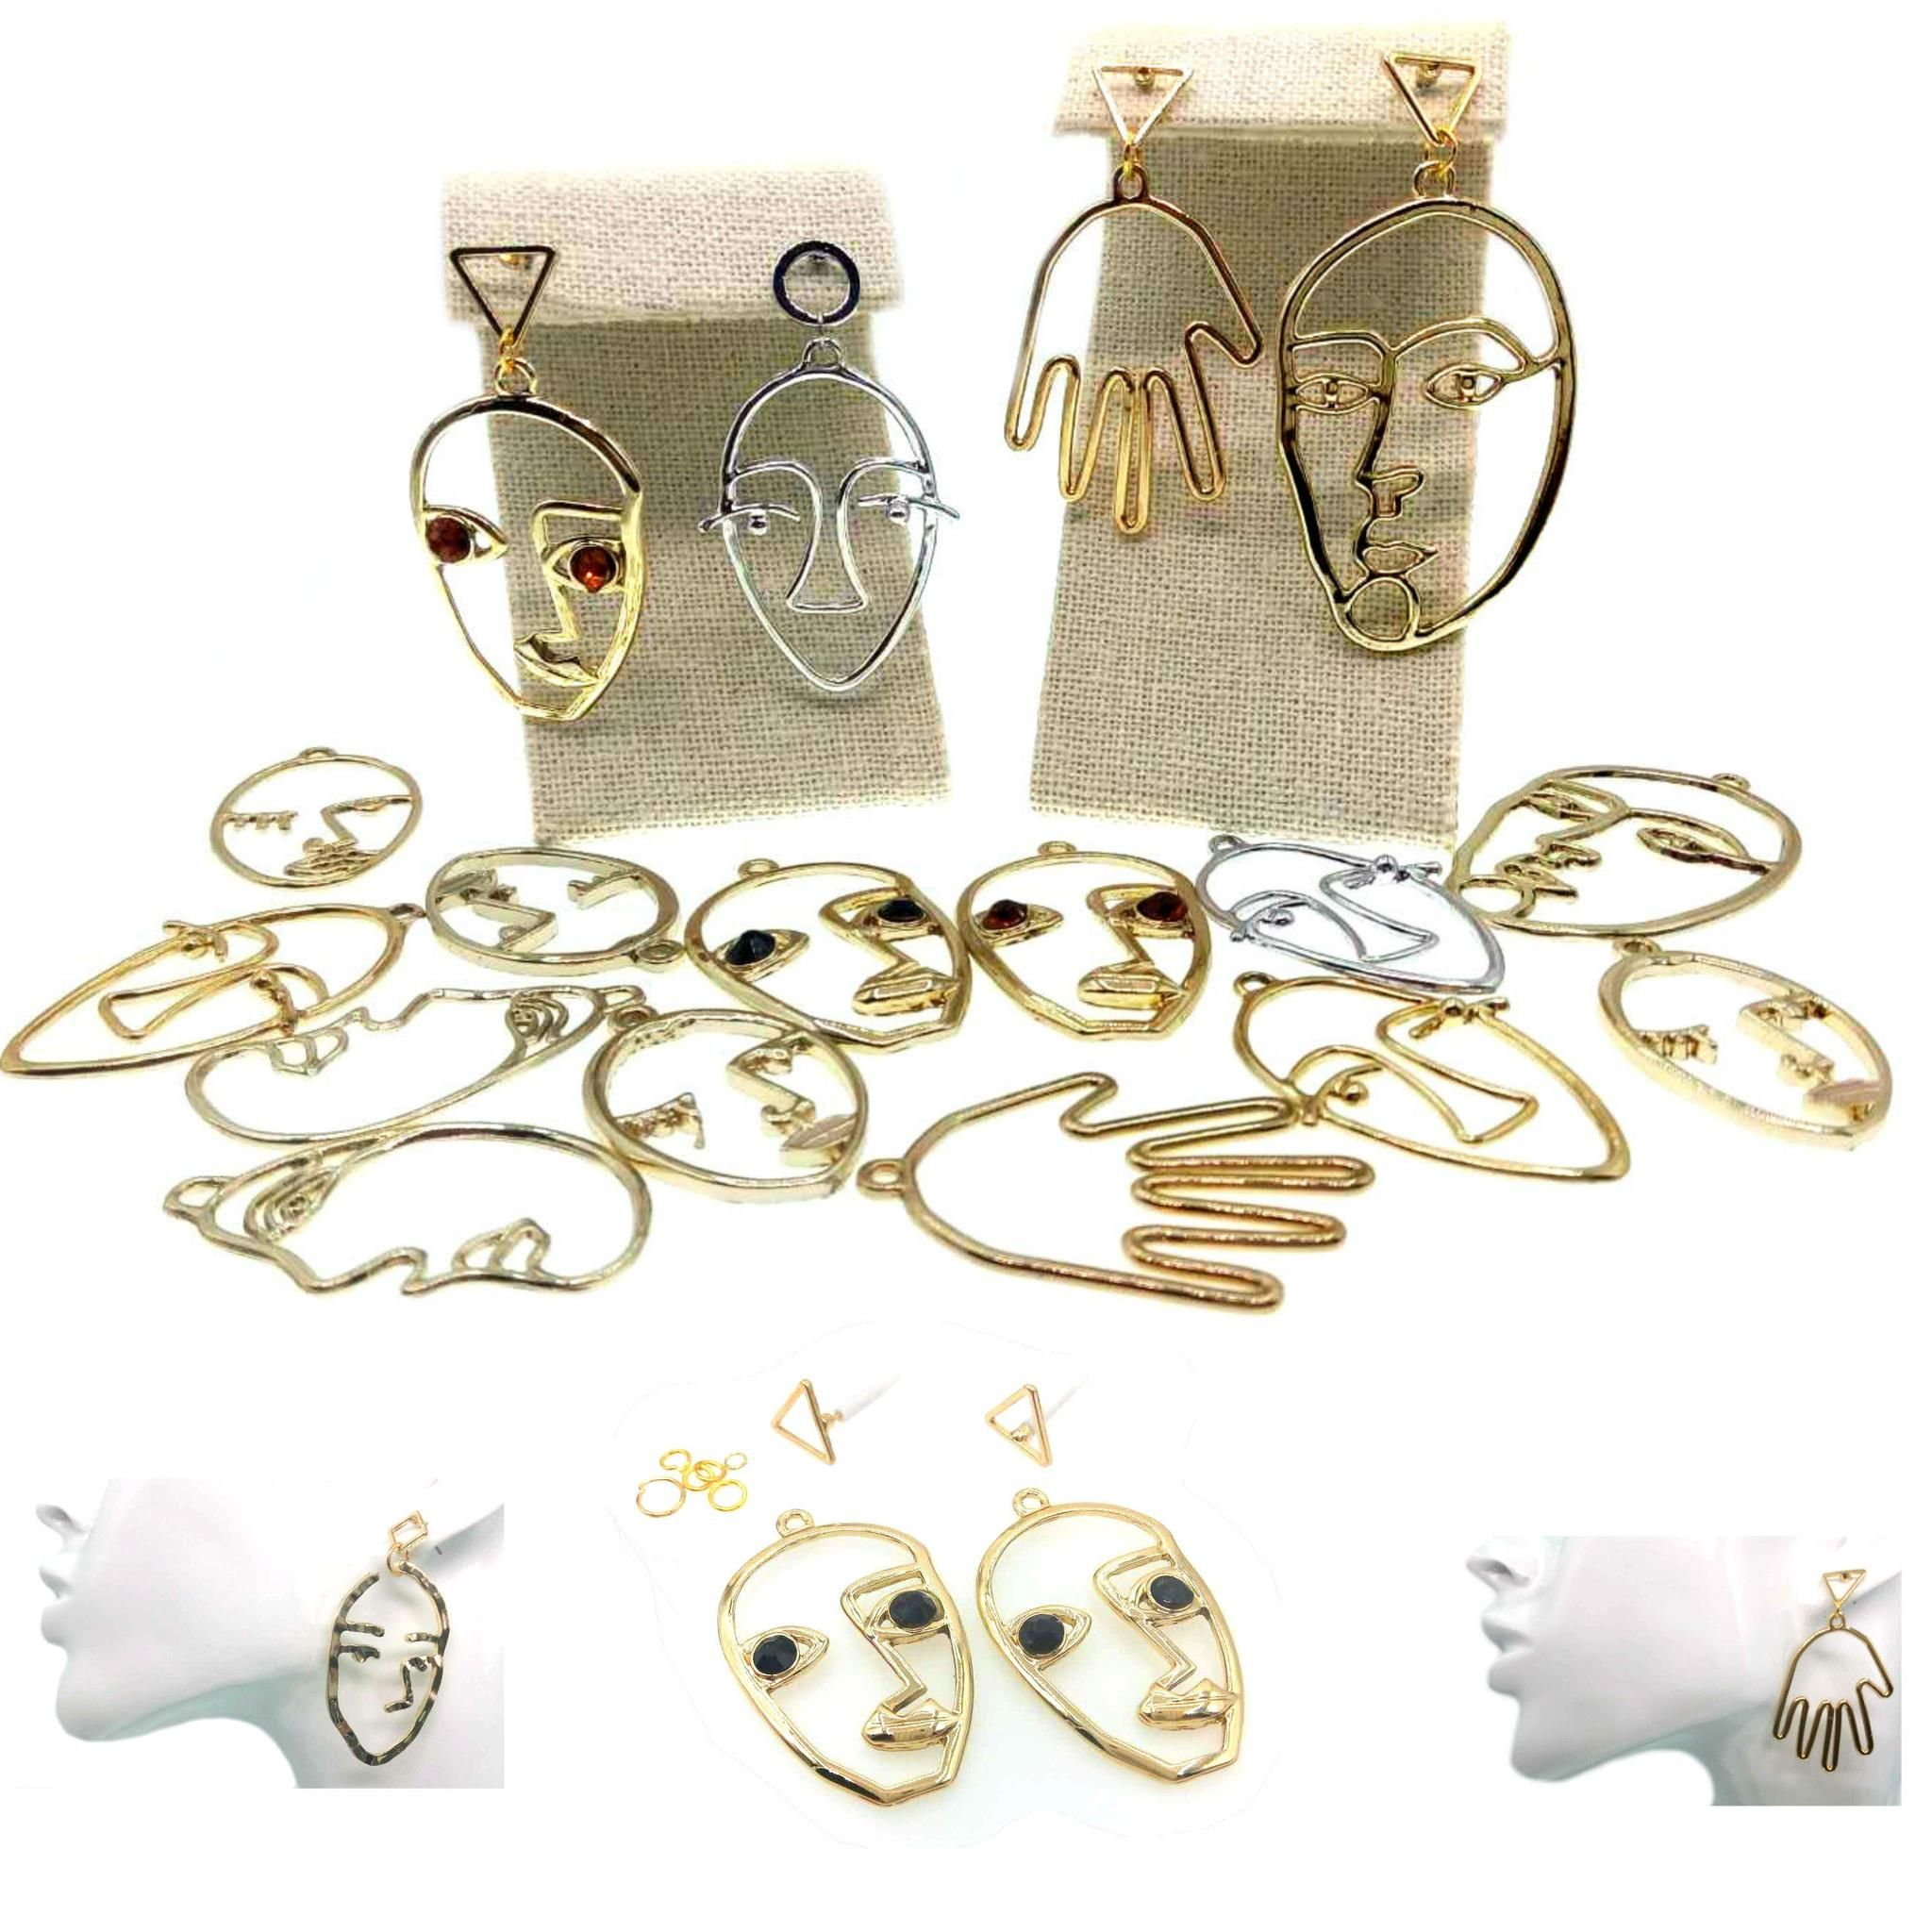 Earrings Abstract Face Modernist Earring Base Stud Jewelry Making Diy Charms For Necklaces Choker Findings 1 Kit 2 Pendants